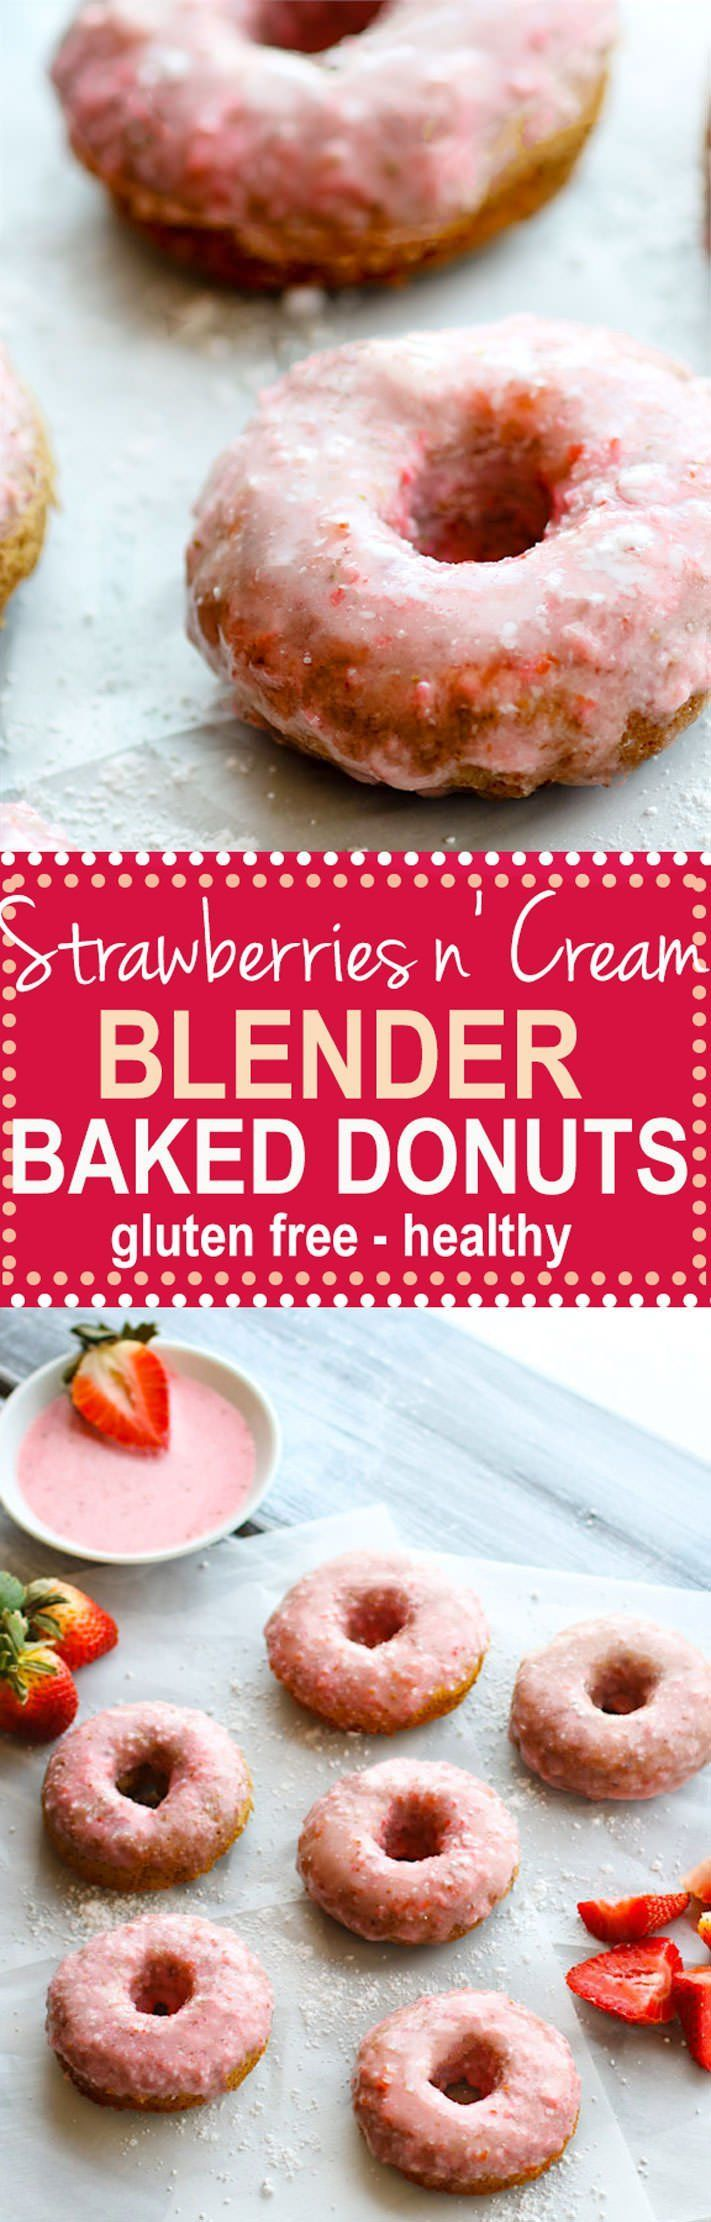 Healthy Gluten Free Strawberries n' Cream BLENDER Baked Donuts. Healthy Donuts do exist! These gluten free and protein packed baked donuts are super easy to make and great for kids, a sweet breakfast, or even just to snack on. Can you believe one of these (Blender Muffin Sugar)